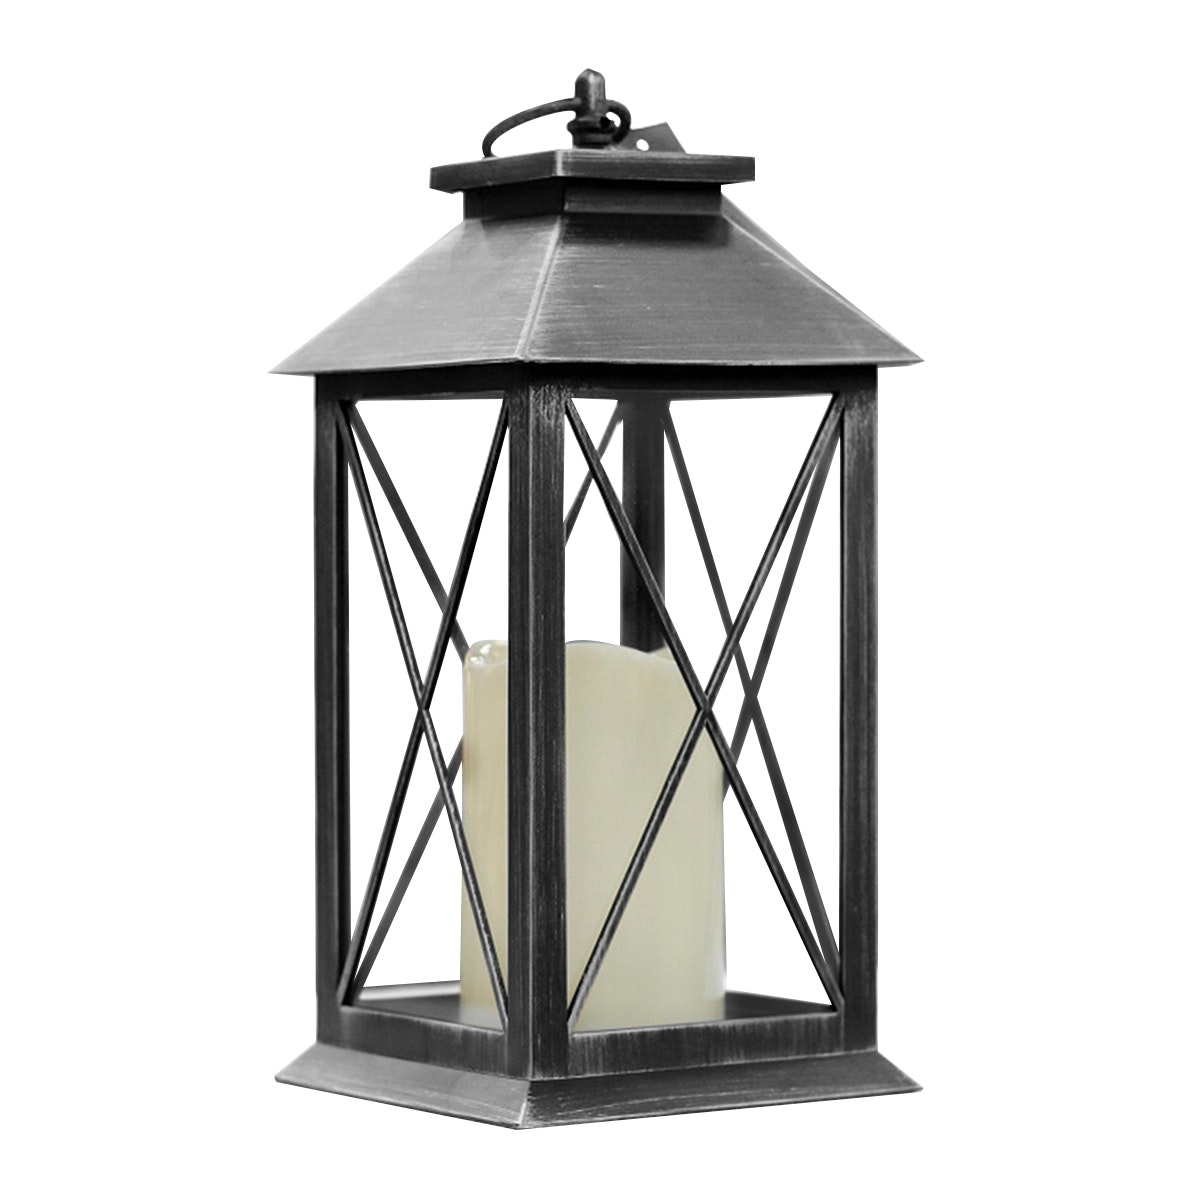 JYSK Plastic Lantern With Led Candle Black